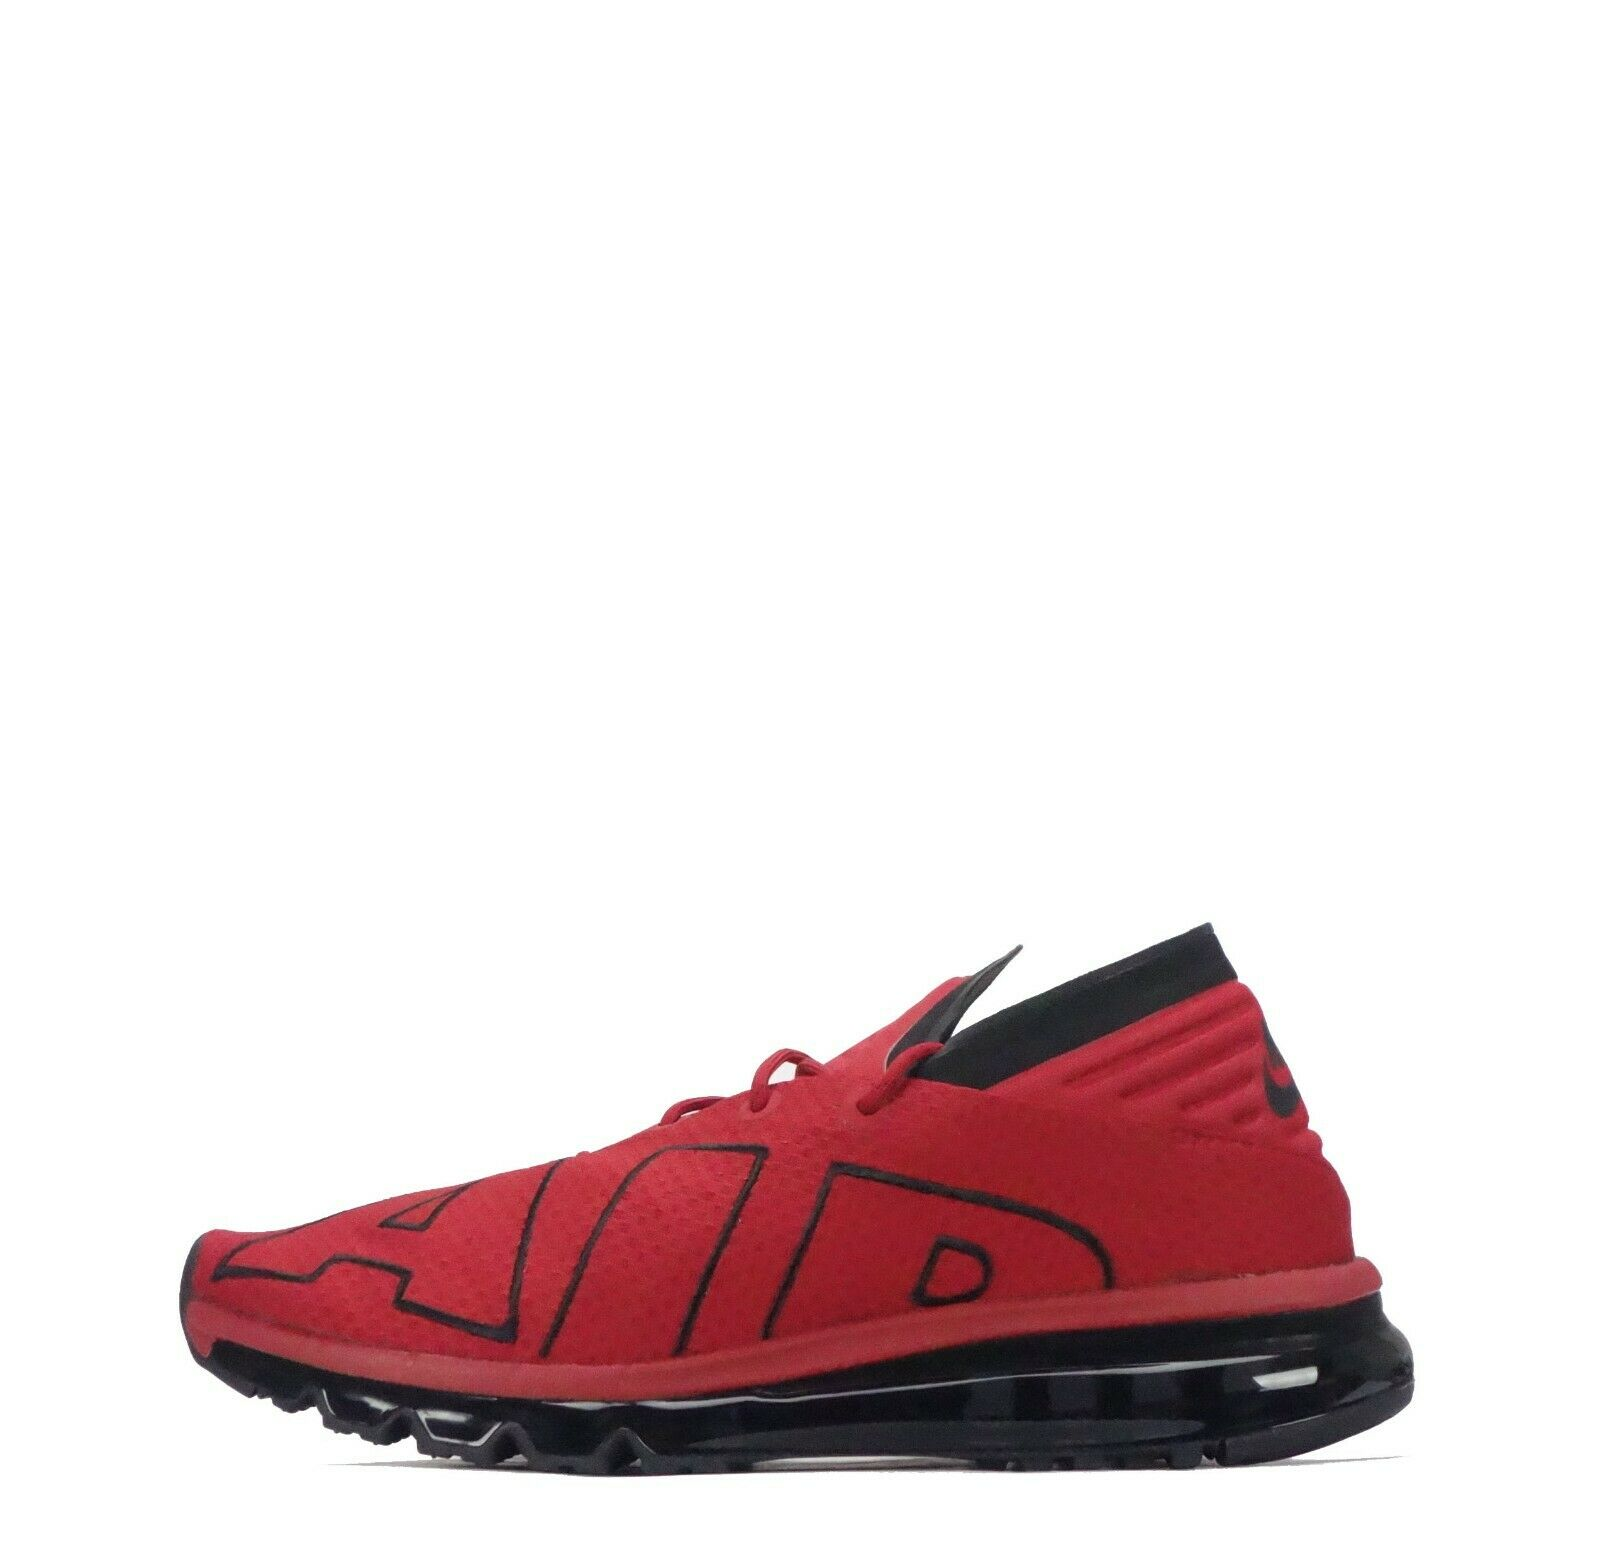 Nike Air Max Flair Men's shoes Gym Red Black